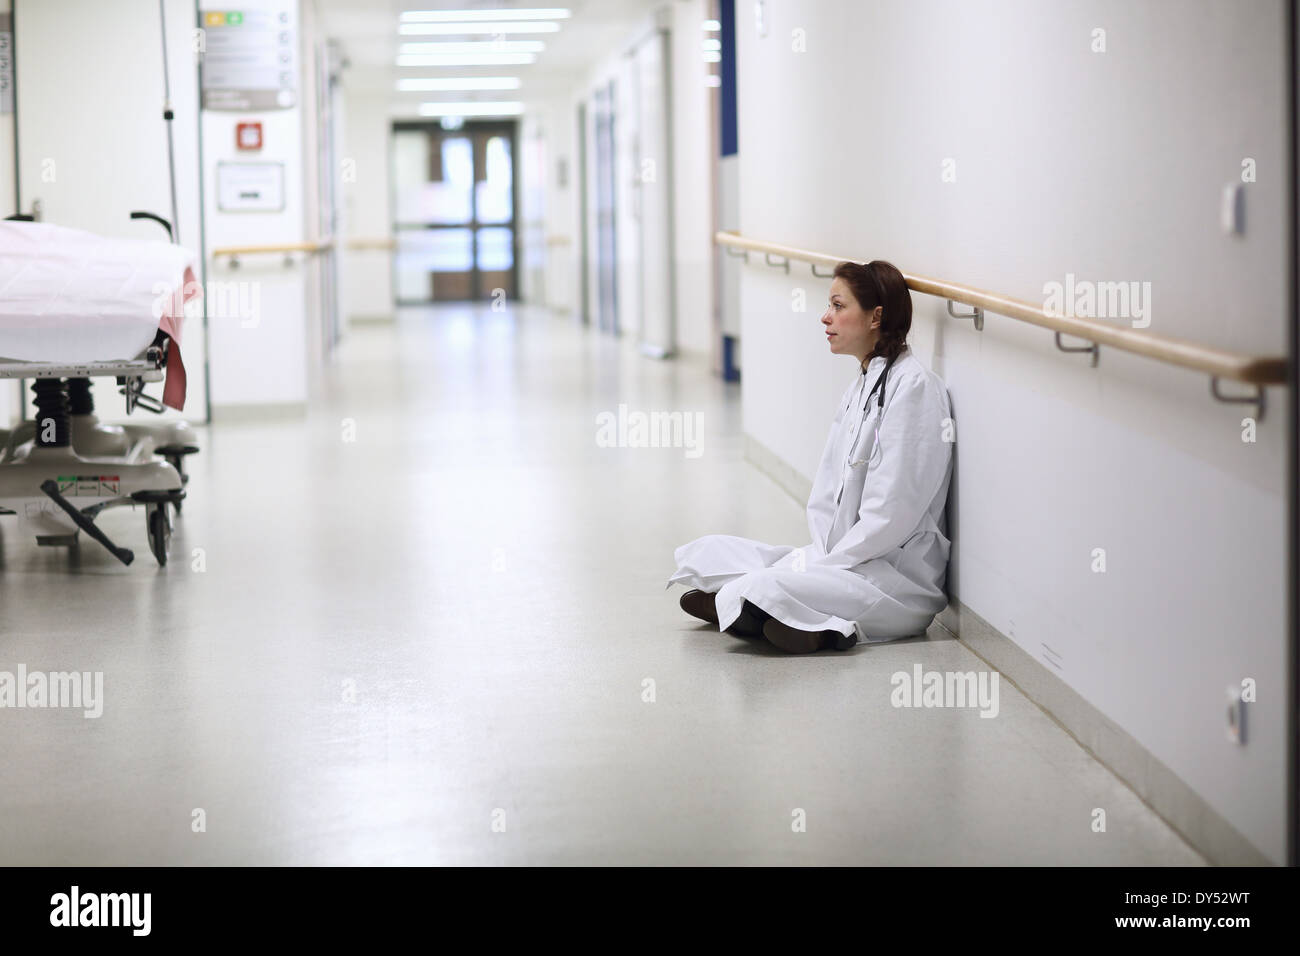 Female doctor sitting cross legged in hospital corridor Banque D'Images